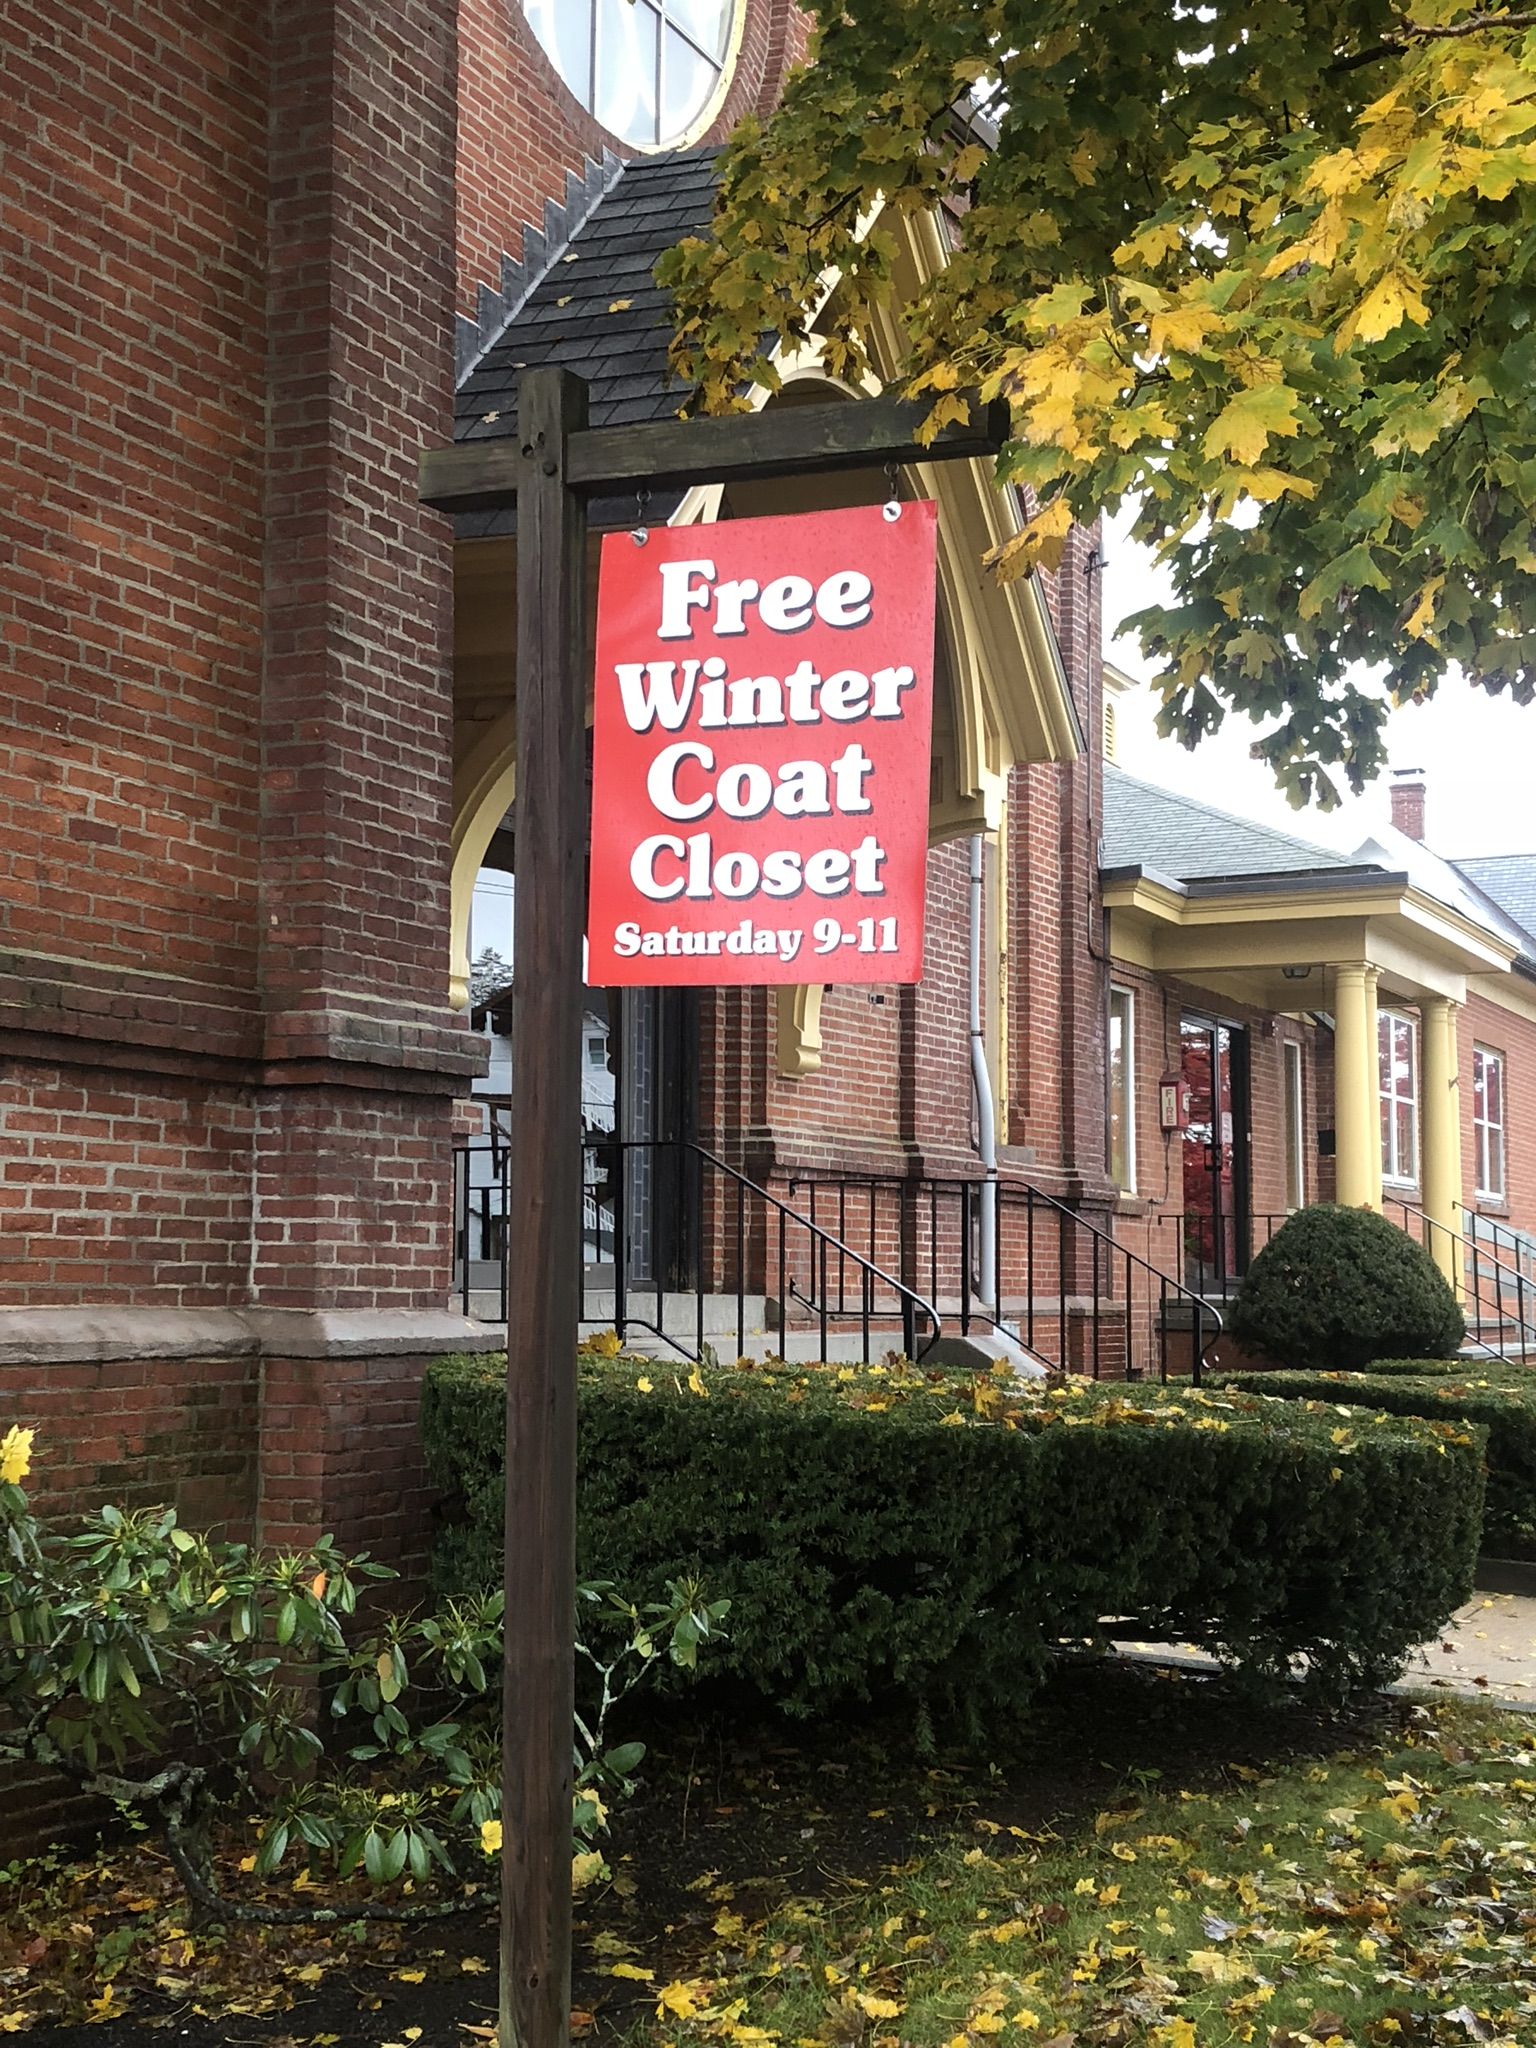 Ecumenical Coat Closet to Operate Several More Weeks